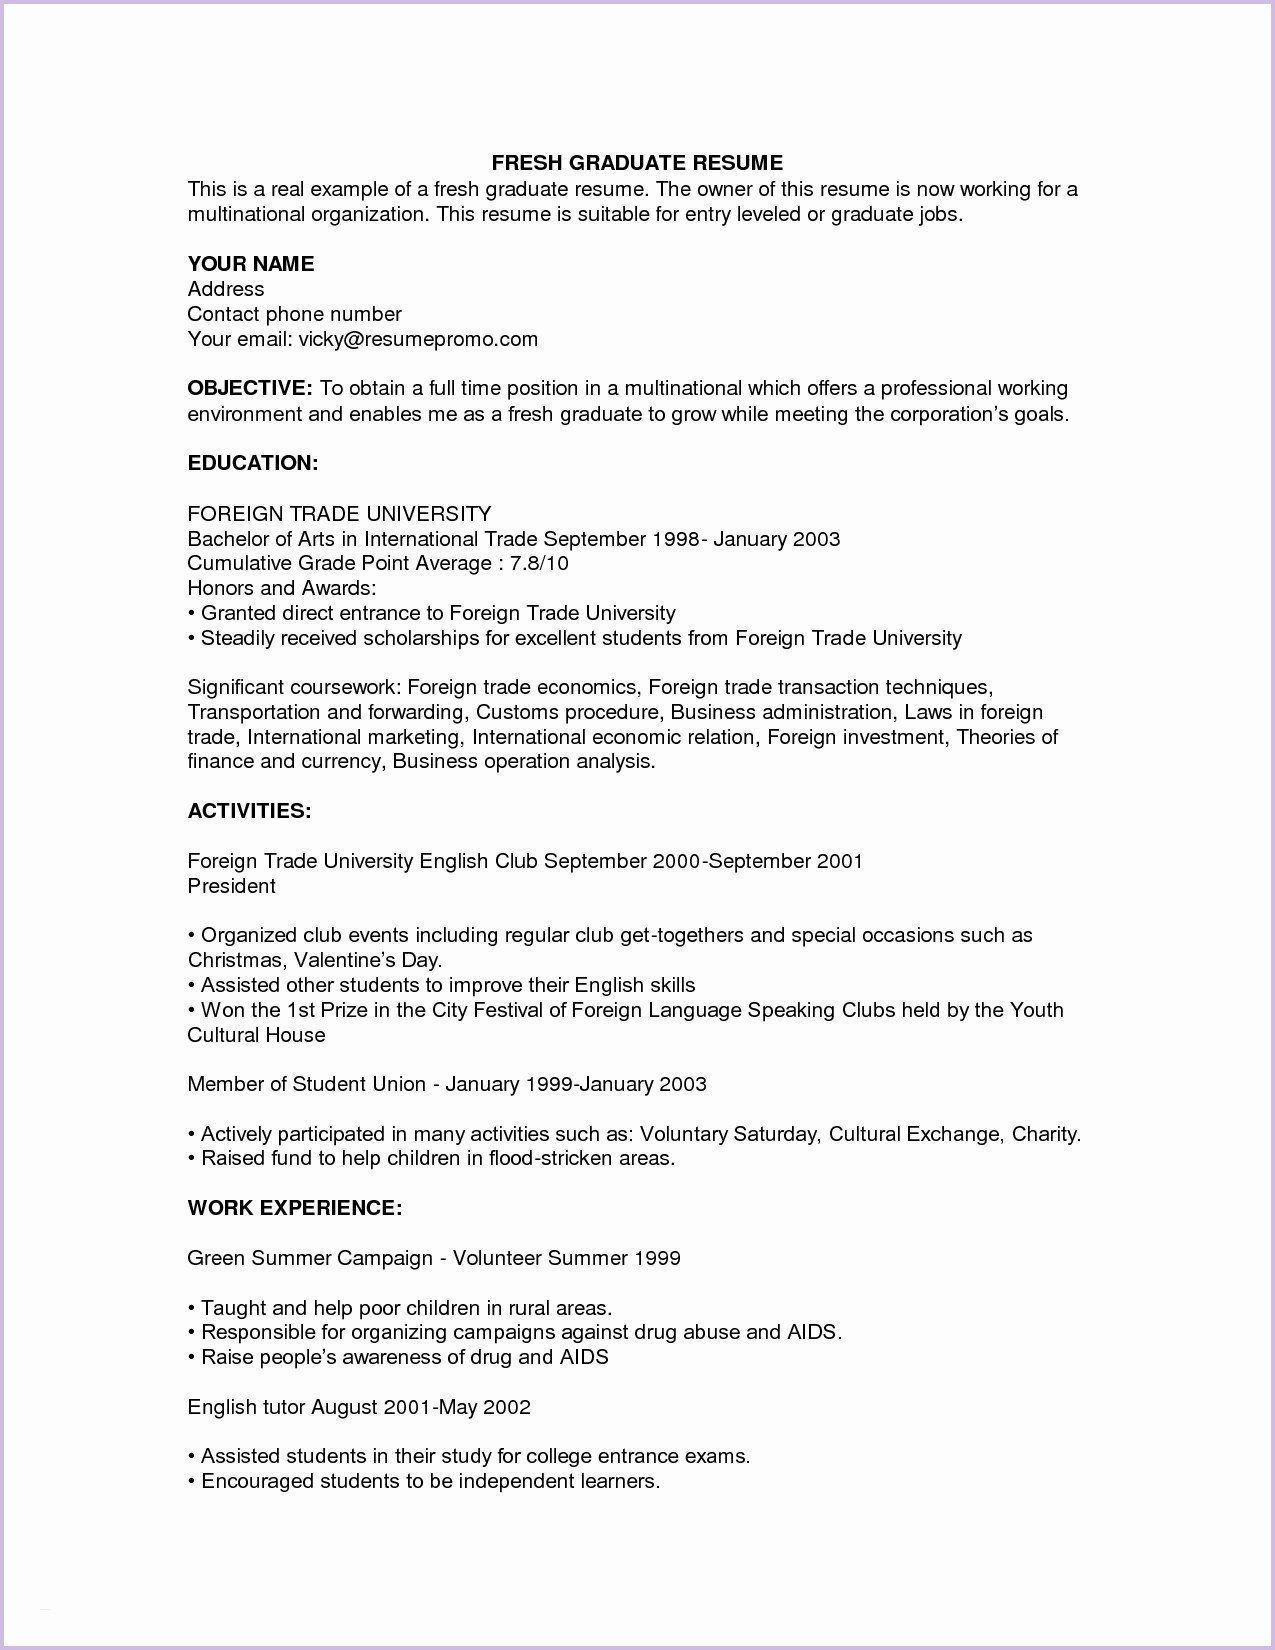 objective in resume for fresh job samples best format objectives graduates sample special Resume Best Resume Objectives For Fresh Graduates